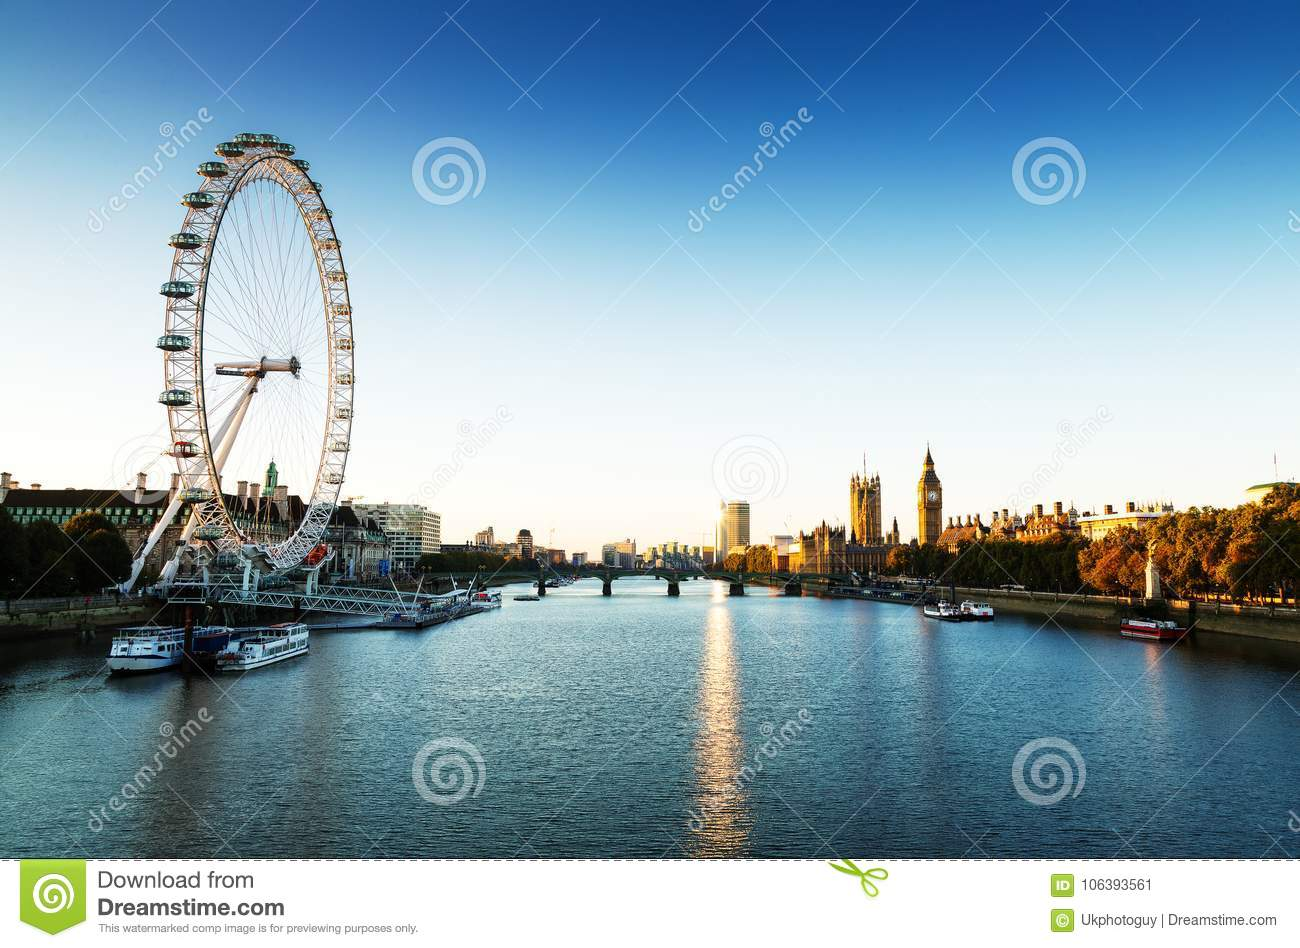 London Skyline landscape at Sunrise with Big Ben, Palace of Westminster, London Eye, Westminster Bridge, River Thames, London, Eng